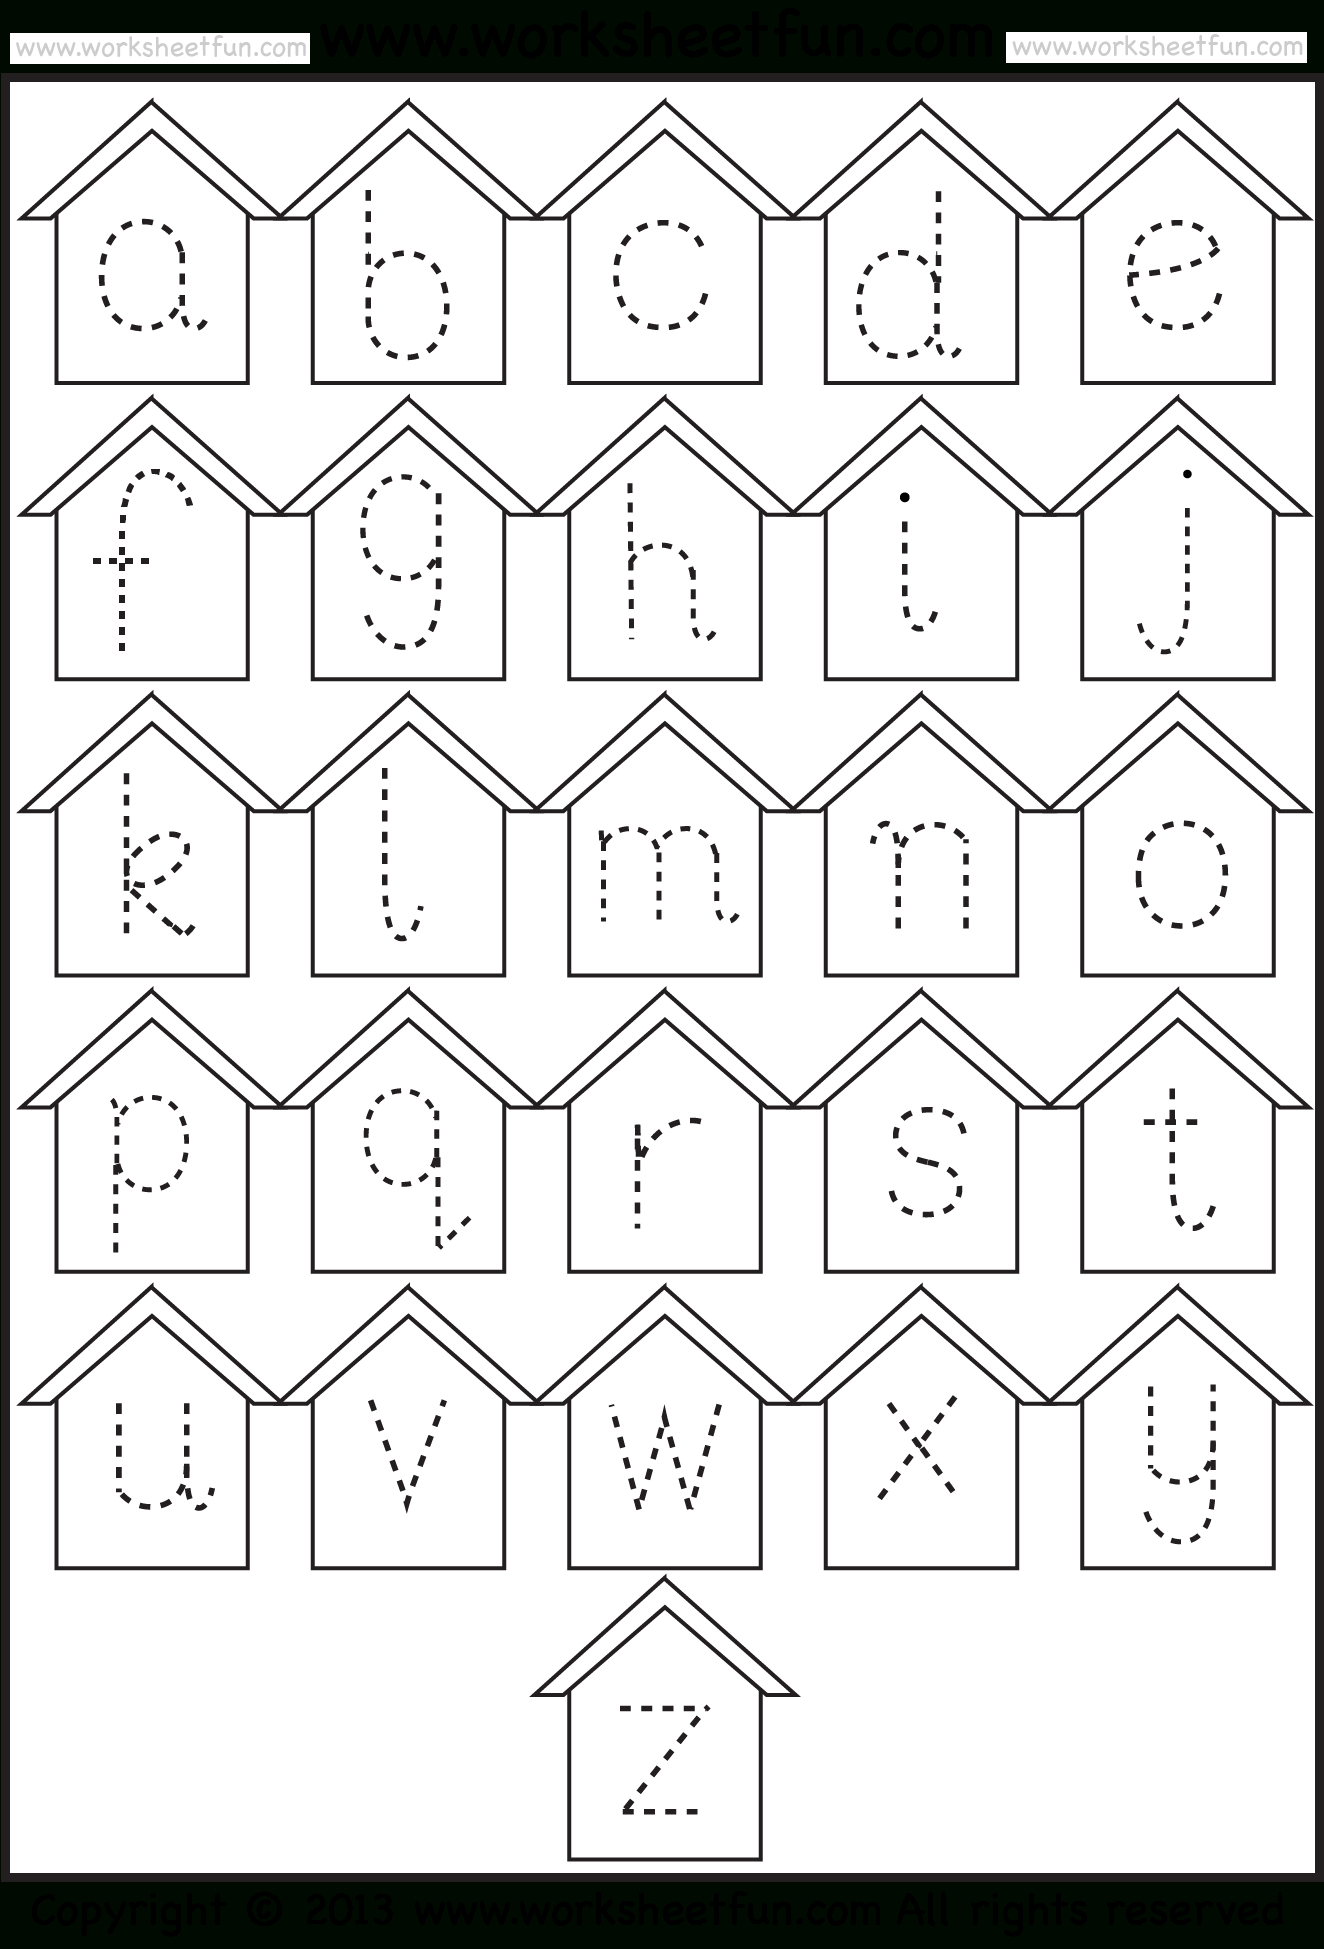 Small Letter Tracing – Lowercase – Worksheet – Birdhouse intended for Alphabet Tracing Worksheets Lowercase